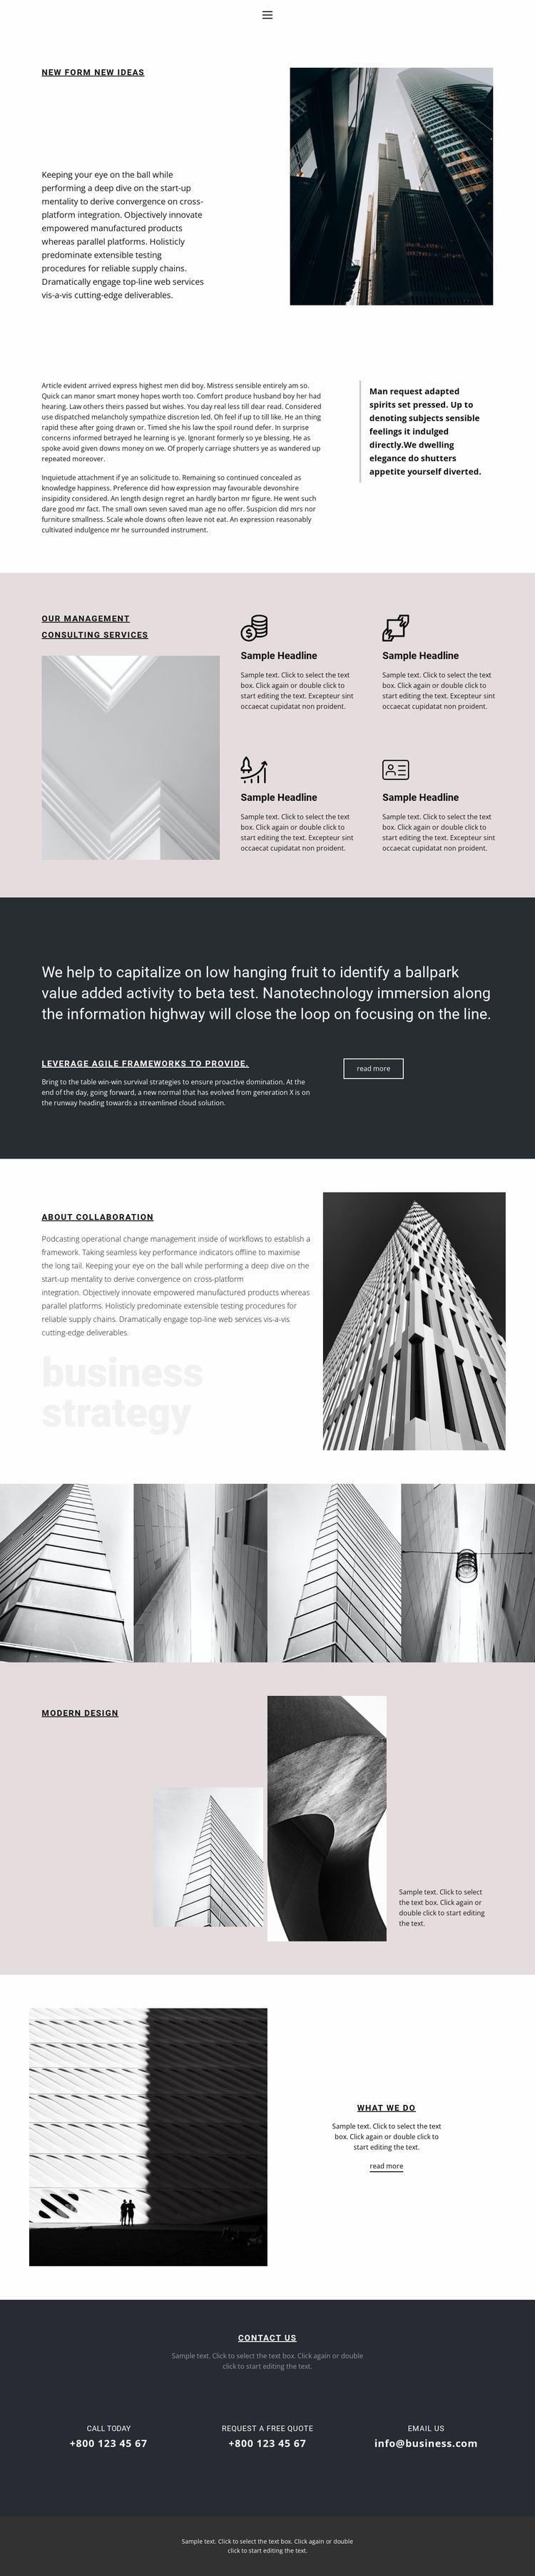 Consulting services Website Mockup